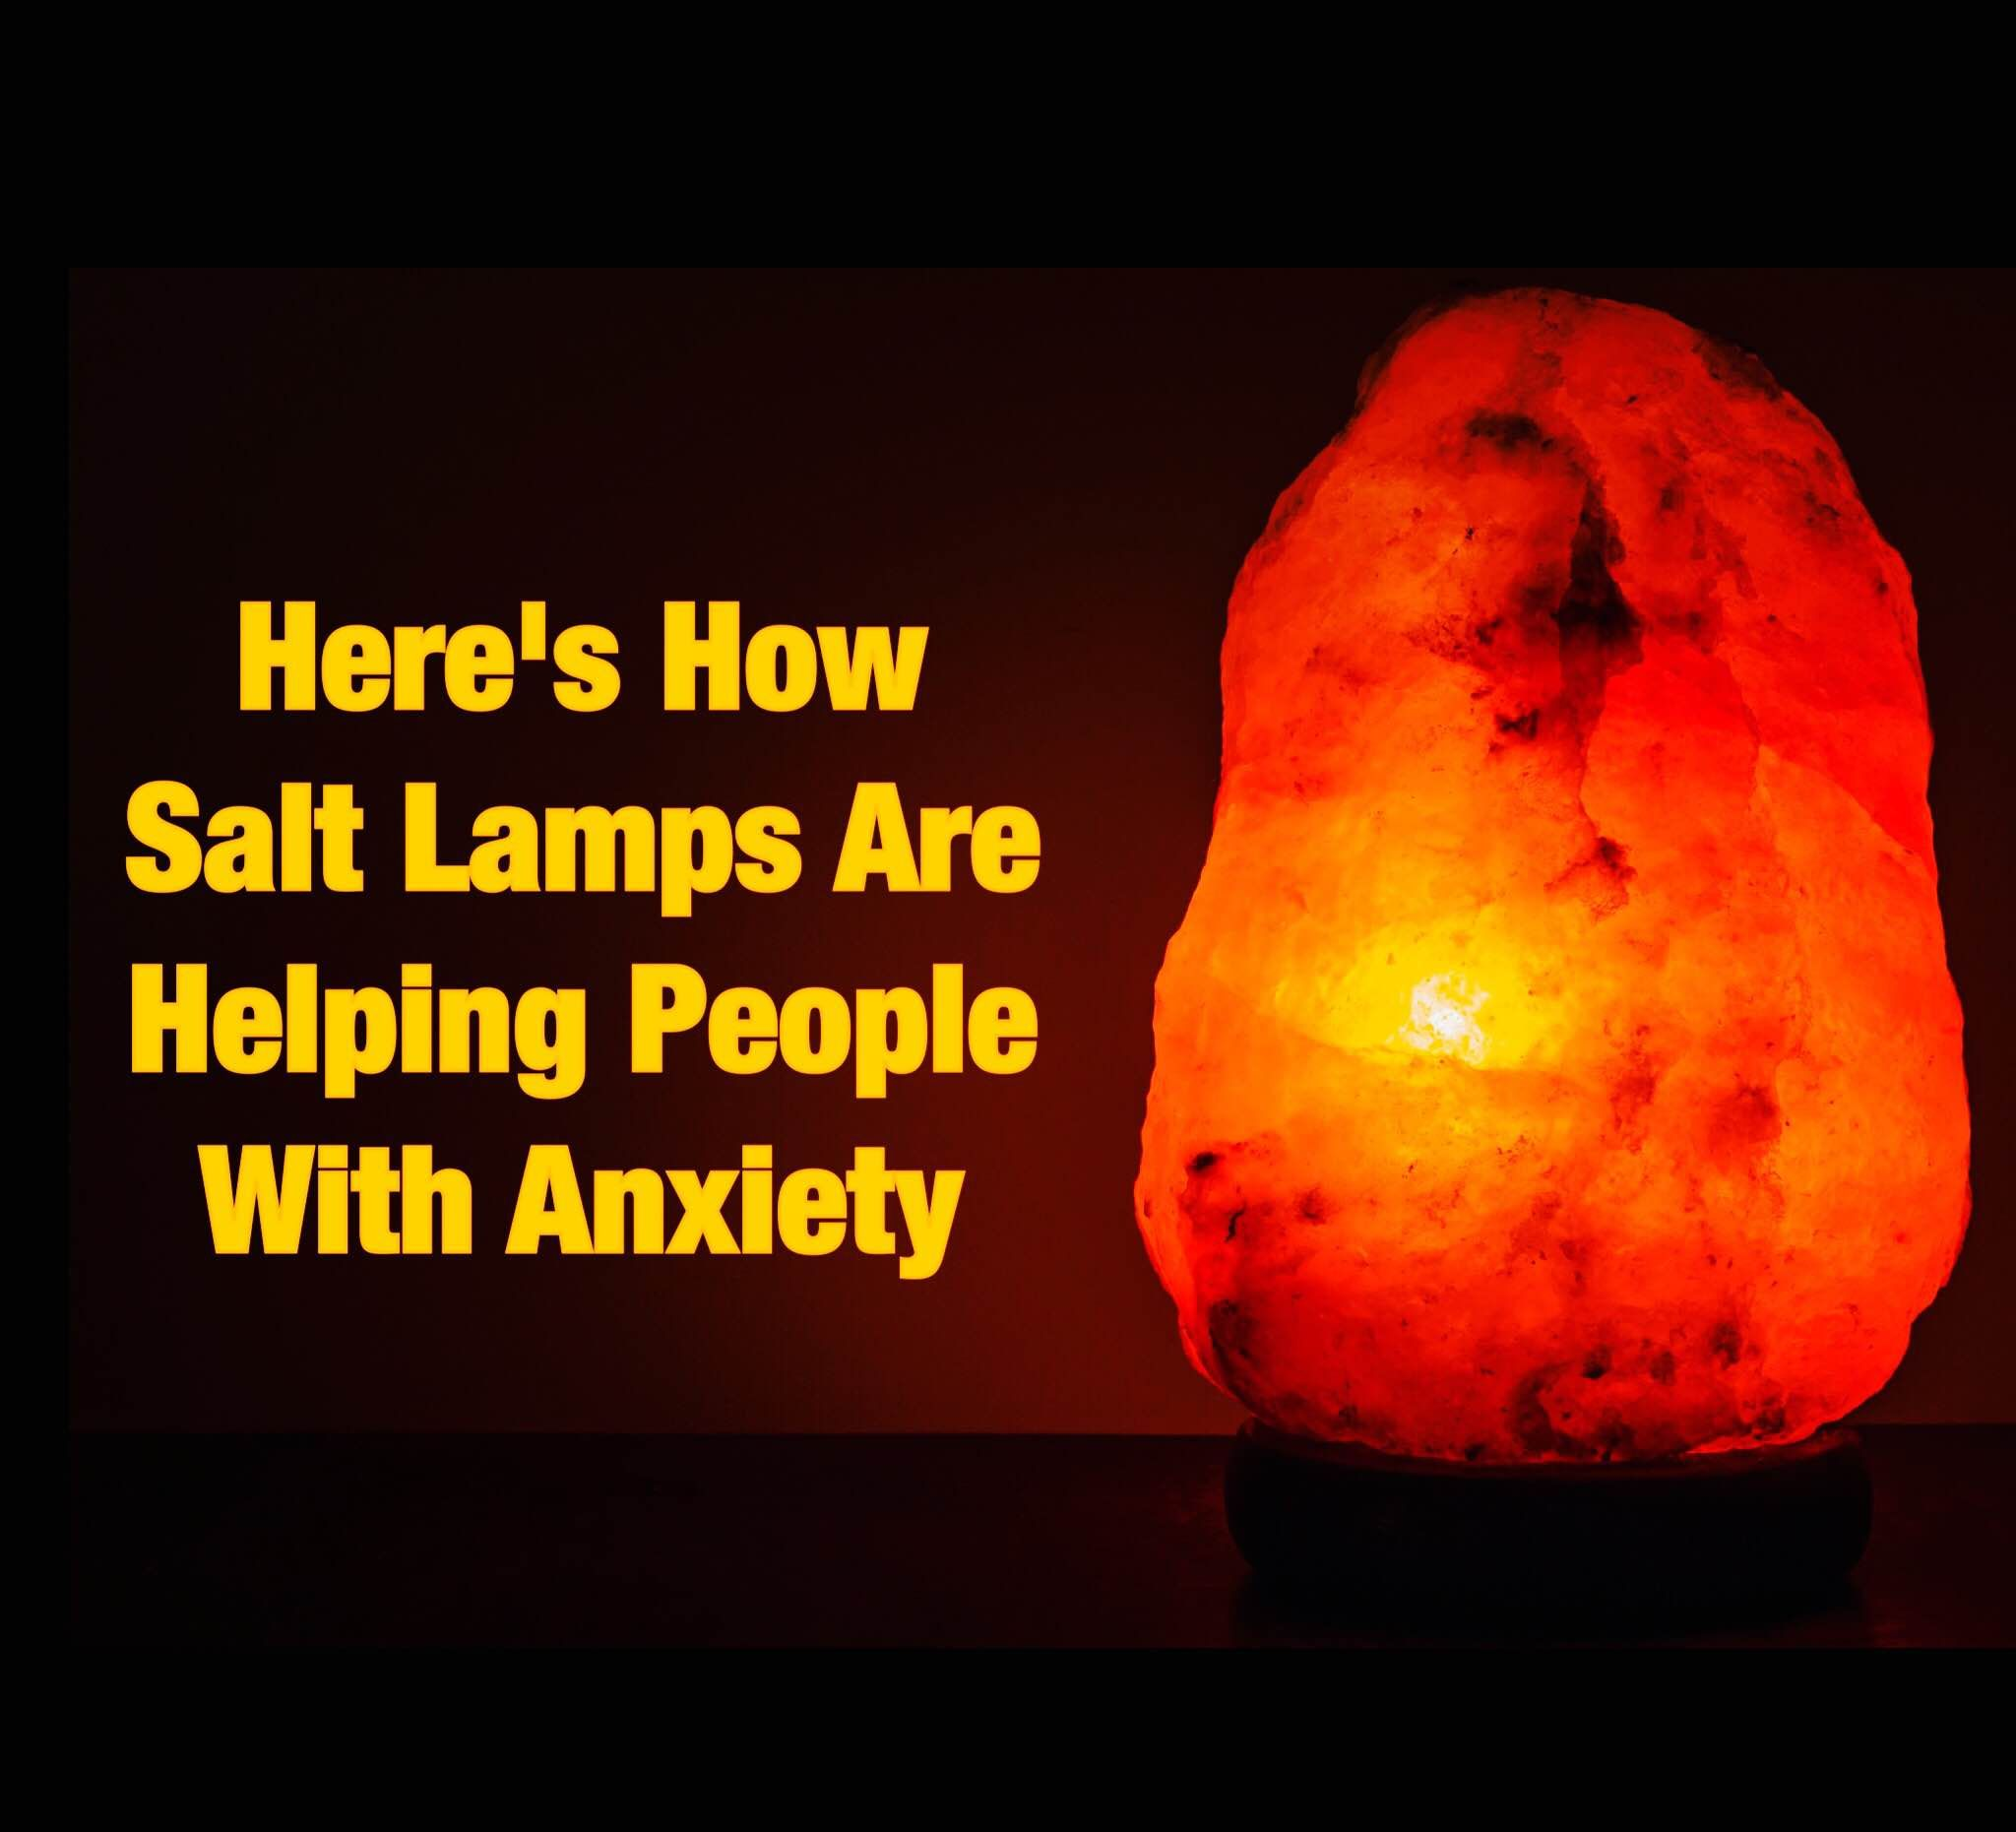 Salt Lamp Anxiety Entrancing Here's How Salt Lamps Are Helping People With Anxiety  Cure Inspiration